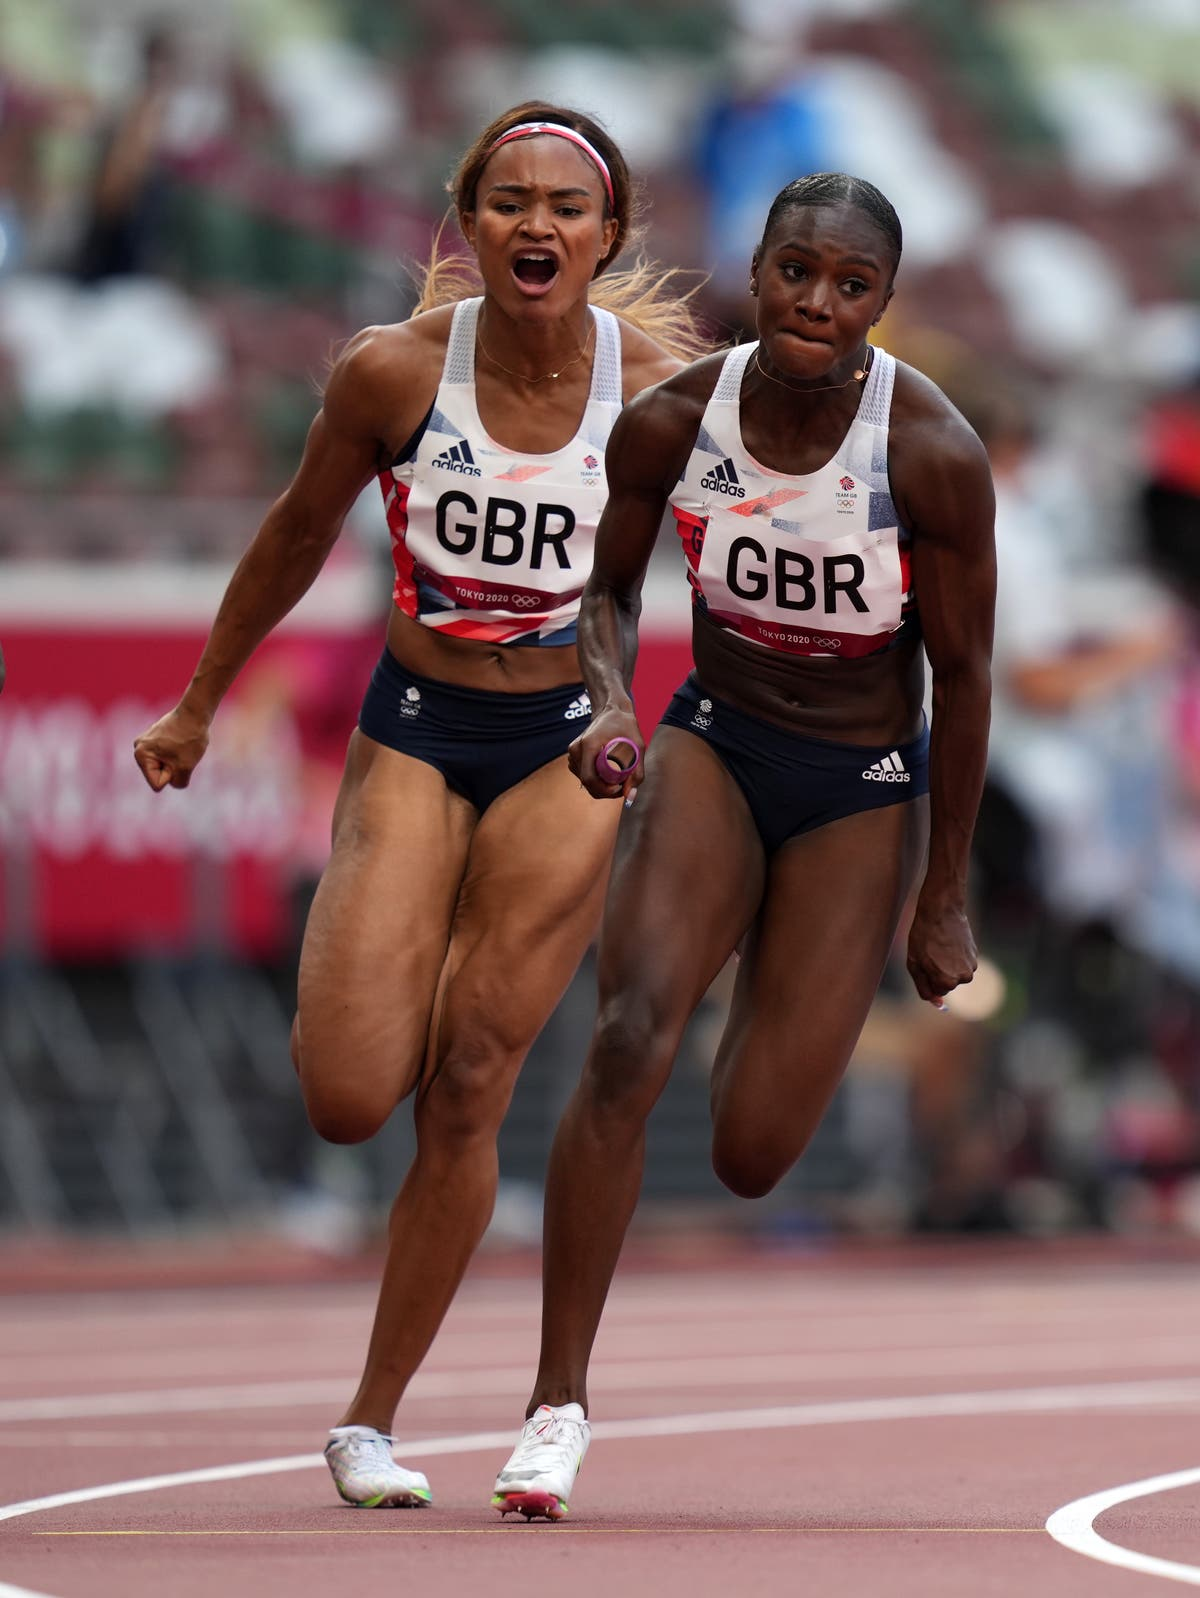 Dina Asher-Smith eyeing relay redemption at Tokyo 2020